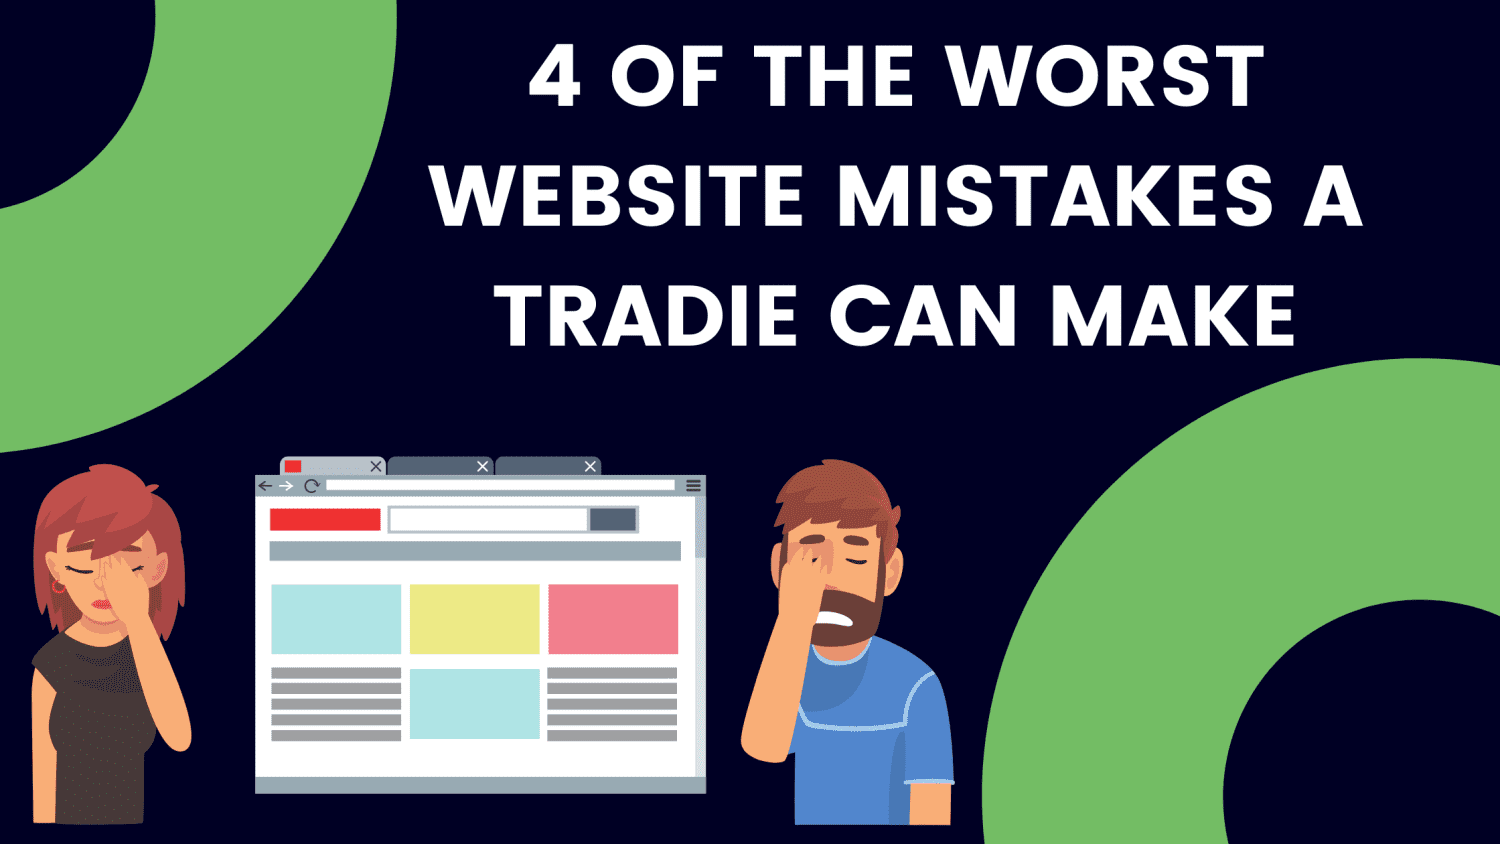 Website Mistakes Image - Blog